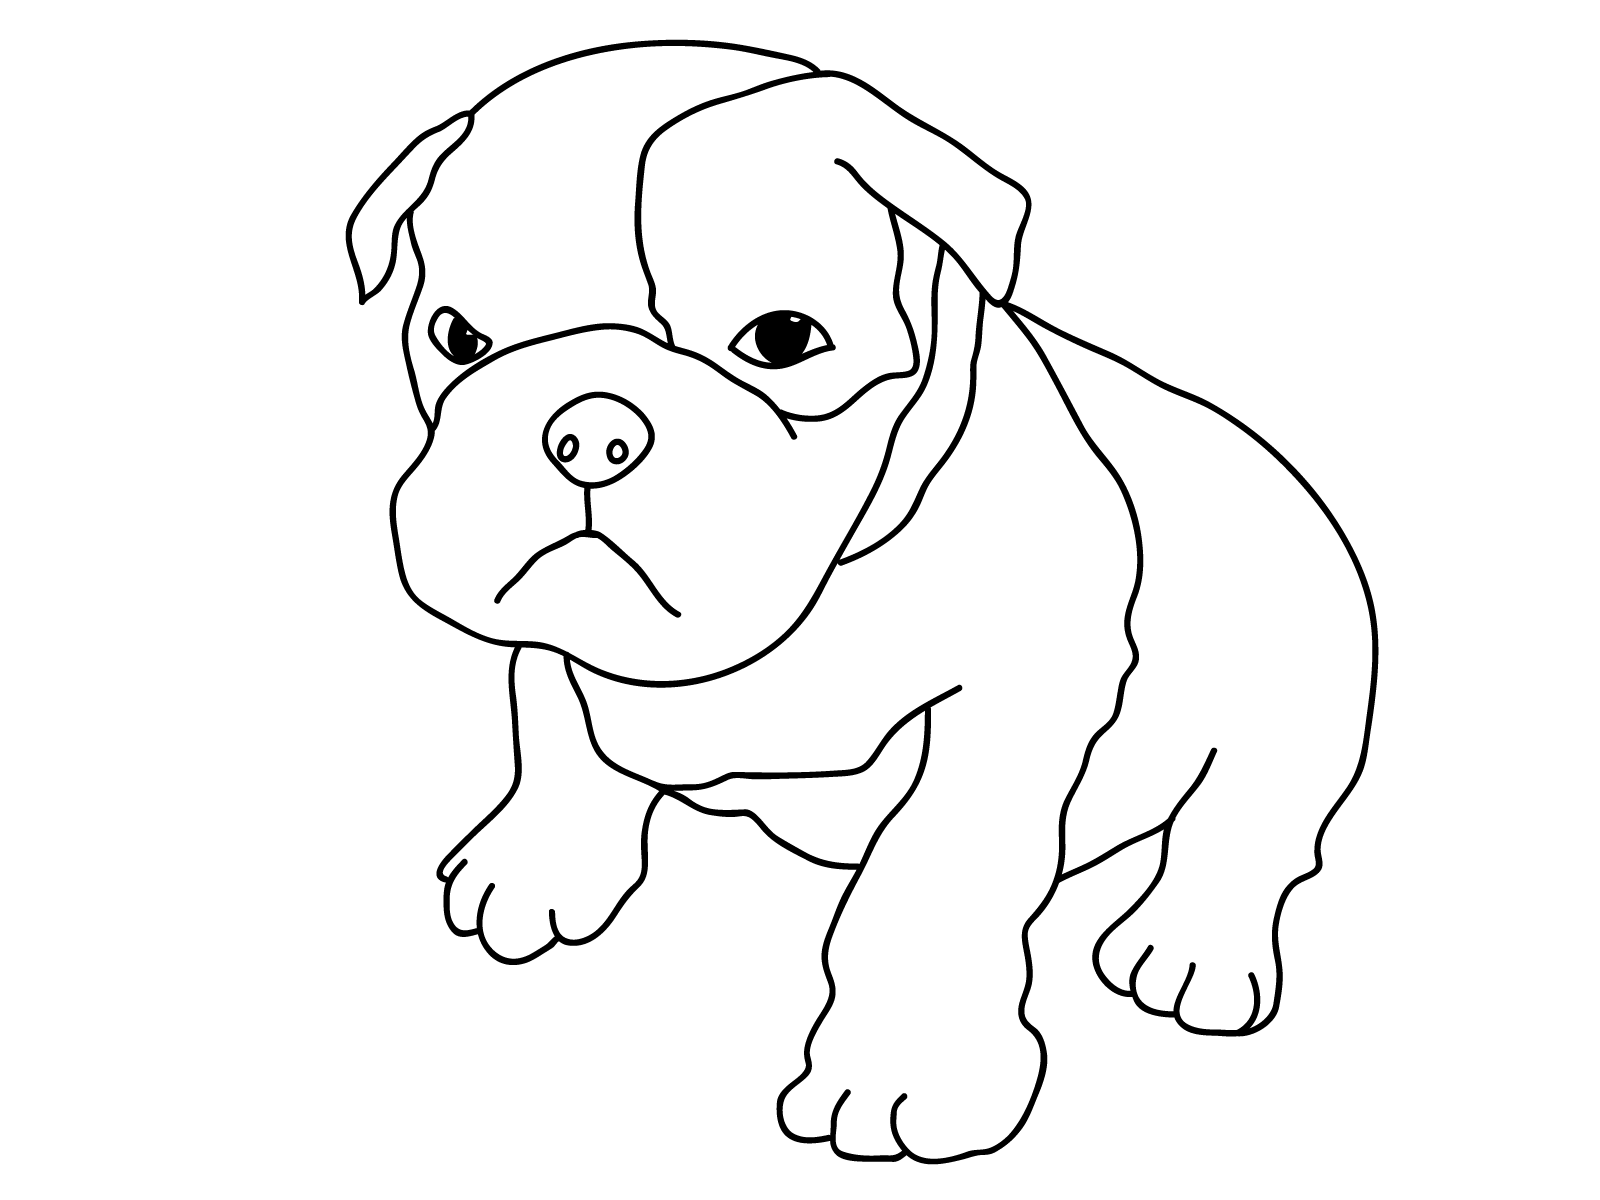 puppy colouring pages puppy coloring pages best coloring pages for kids pages colouring puppy